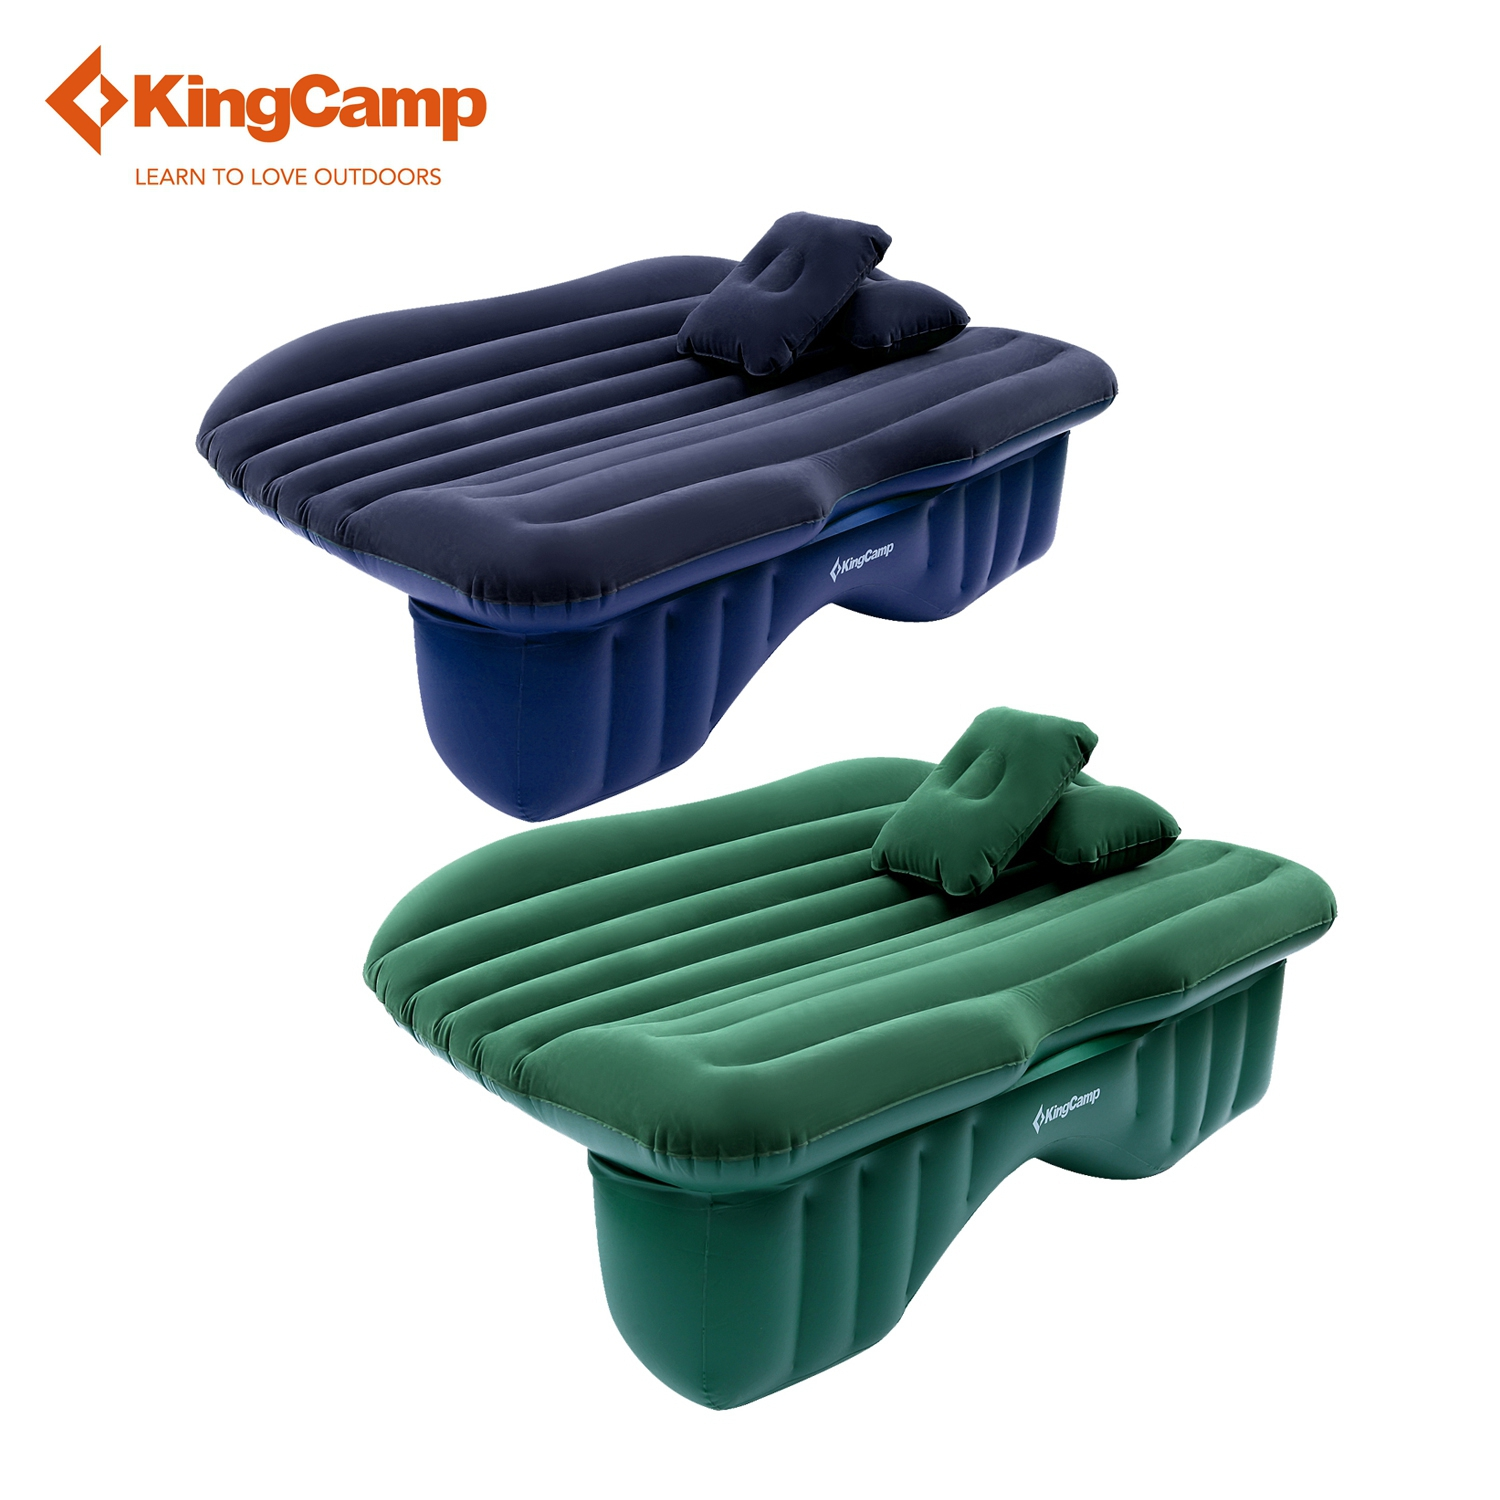 KingCamp Portable Outdoor Car Inflatable Mattress Flock Backseat Airbed Mat  with Oxford Sack for Self-